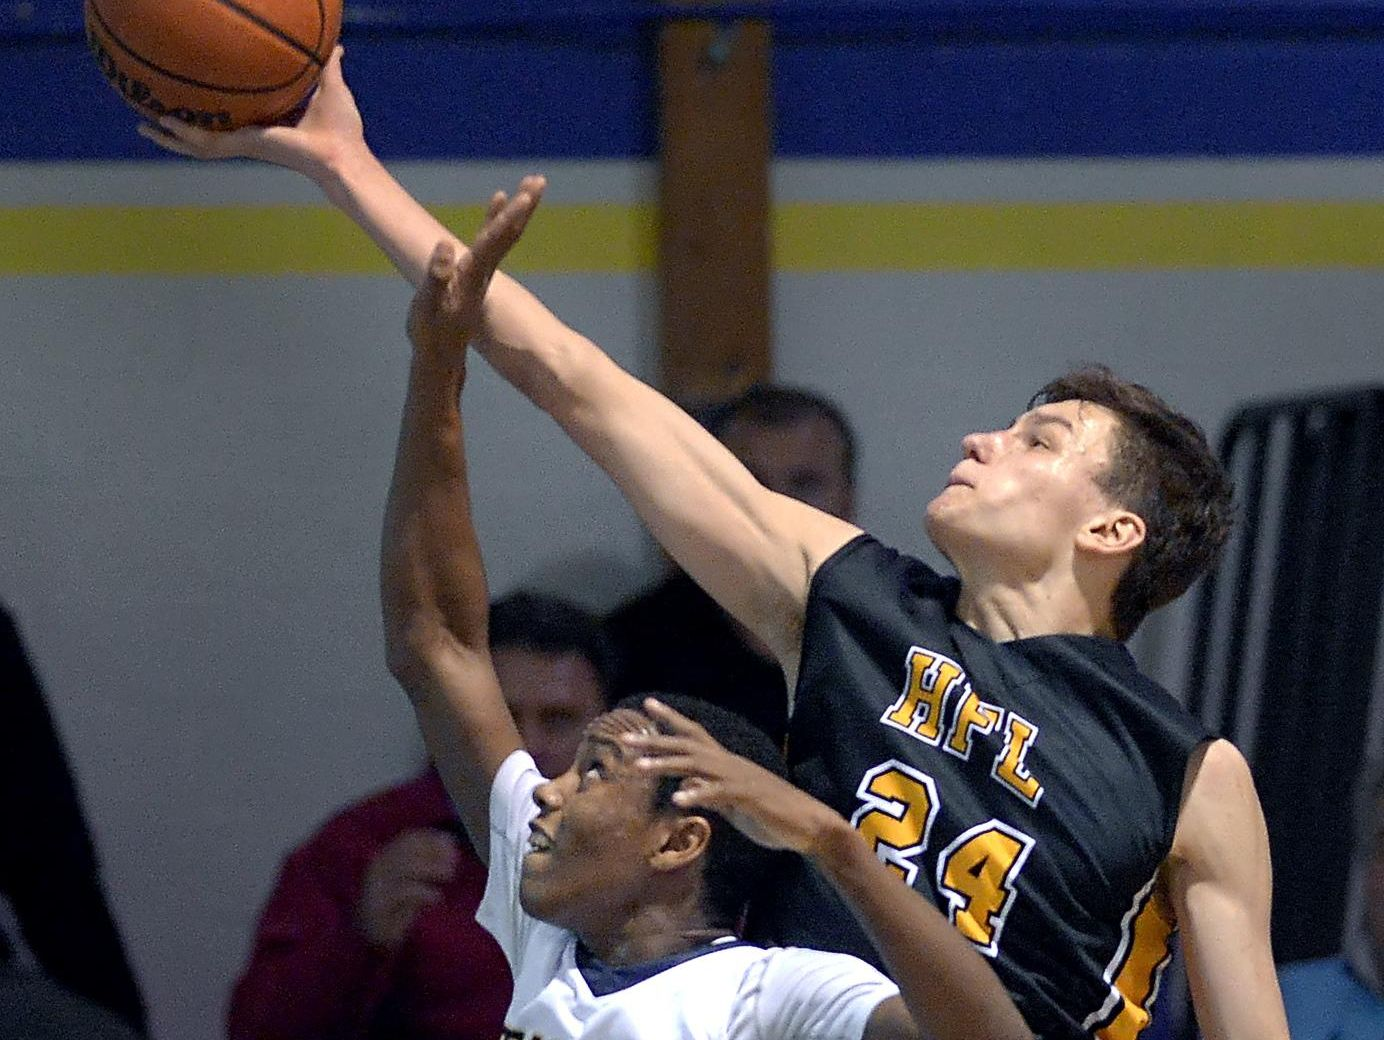 Honeoye Falls-Lima's Tommy Eastman, right, reaches over Brighton's Alex Jordan for a rebound during a regular season game played at Brighton High School on Wednesday, Feb. 3, 2016. HF-L beat Brighton 54-43.